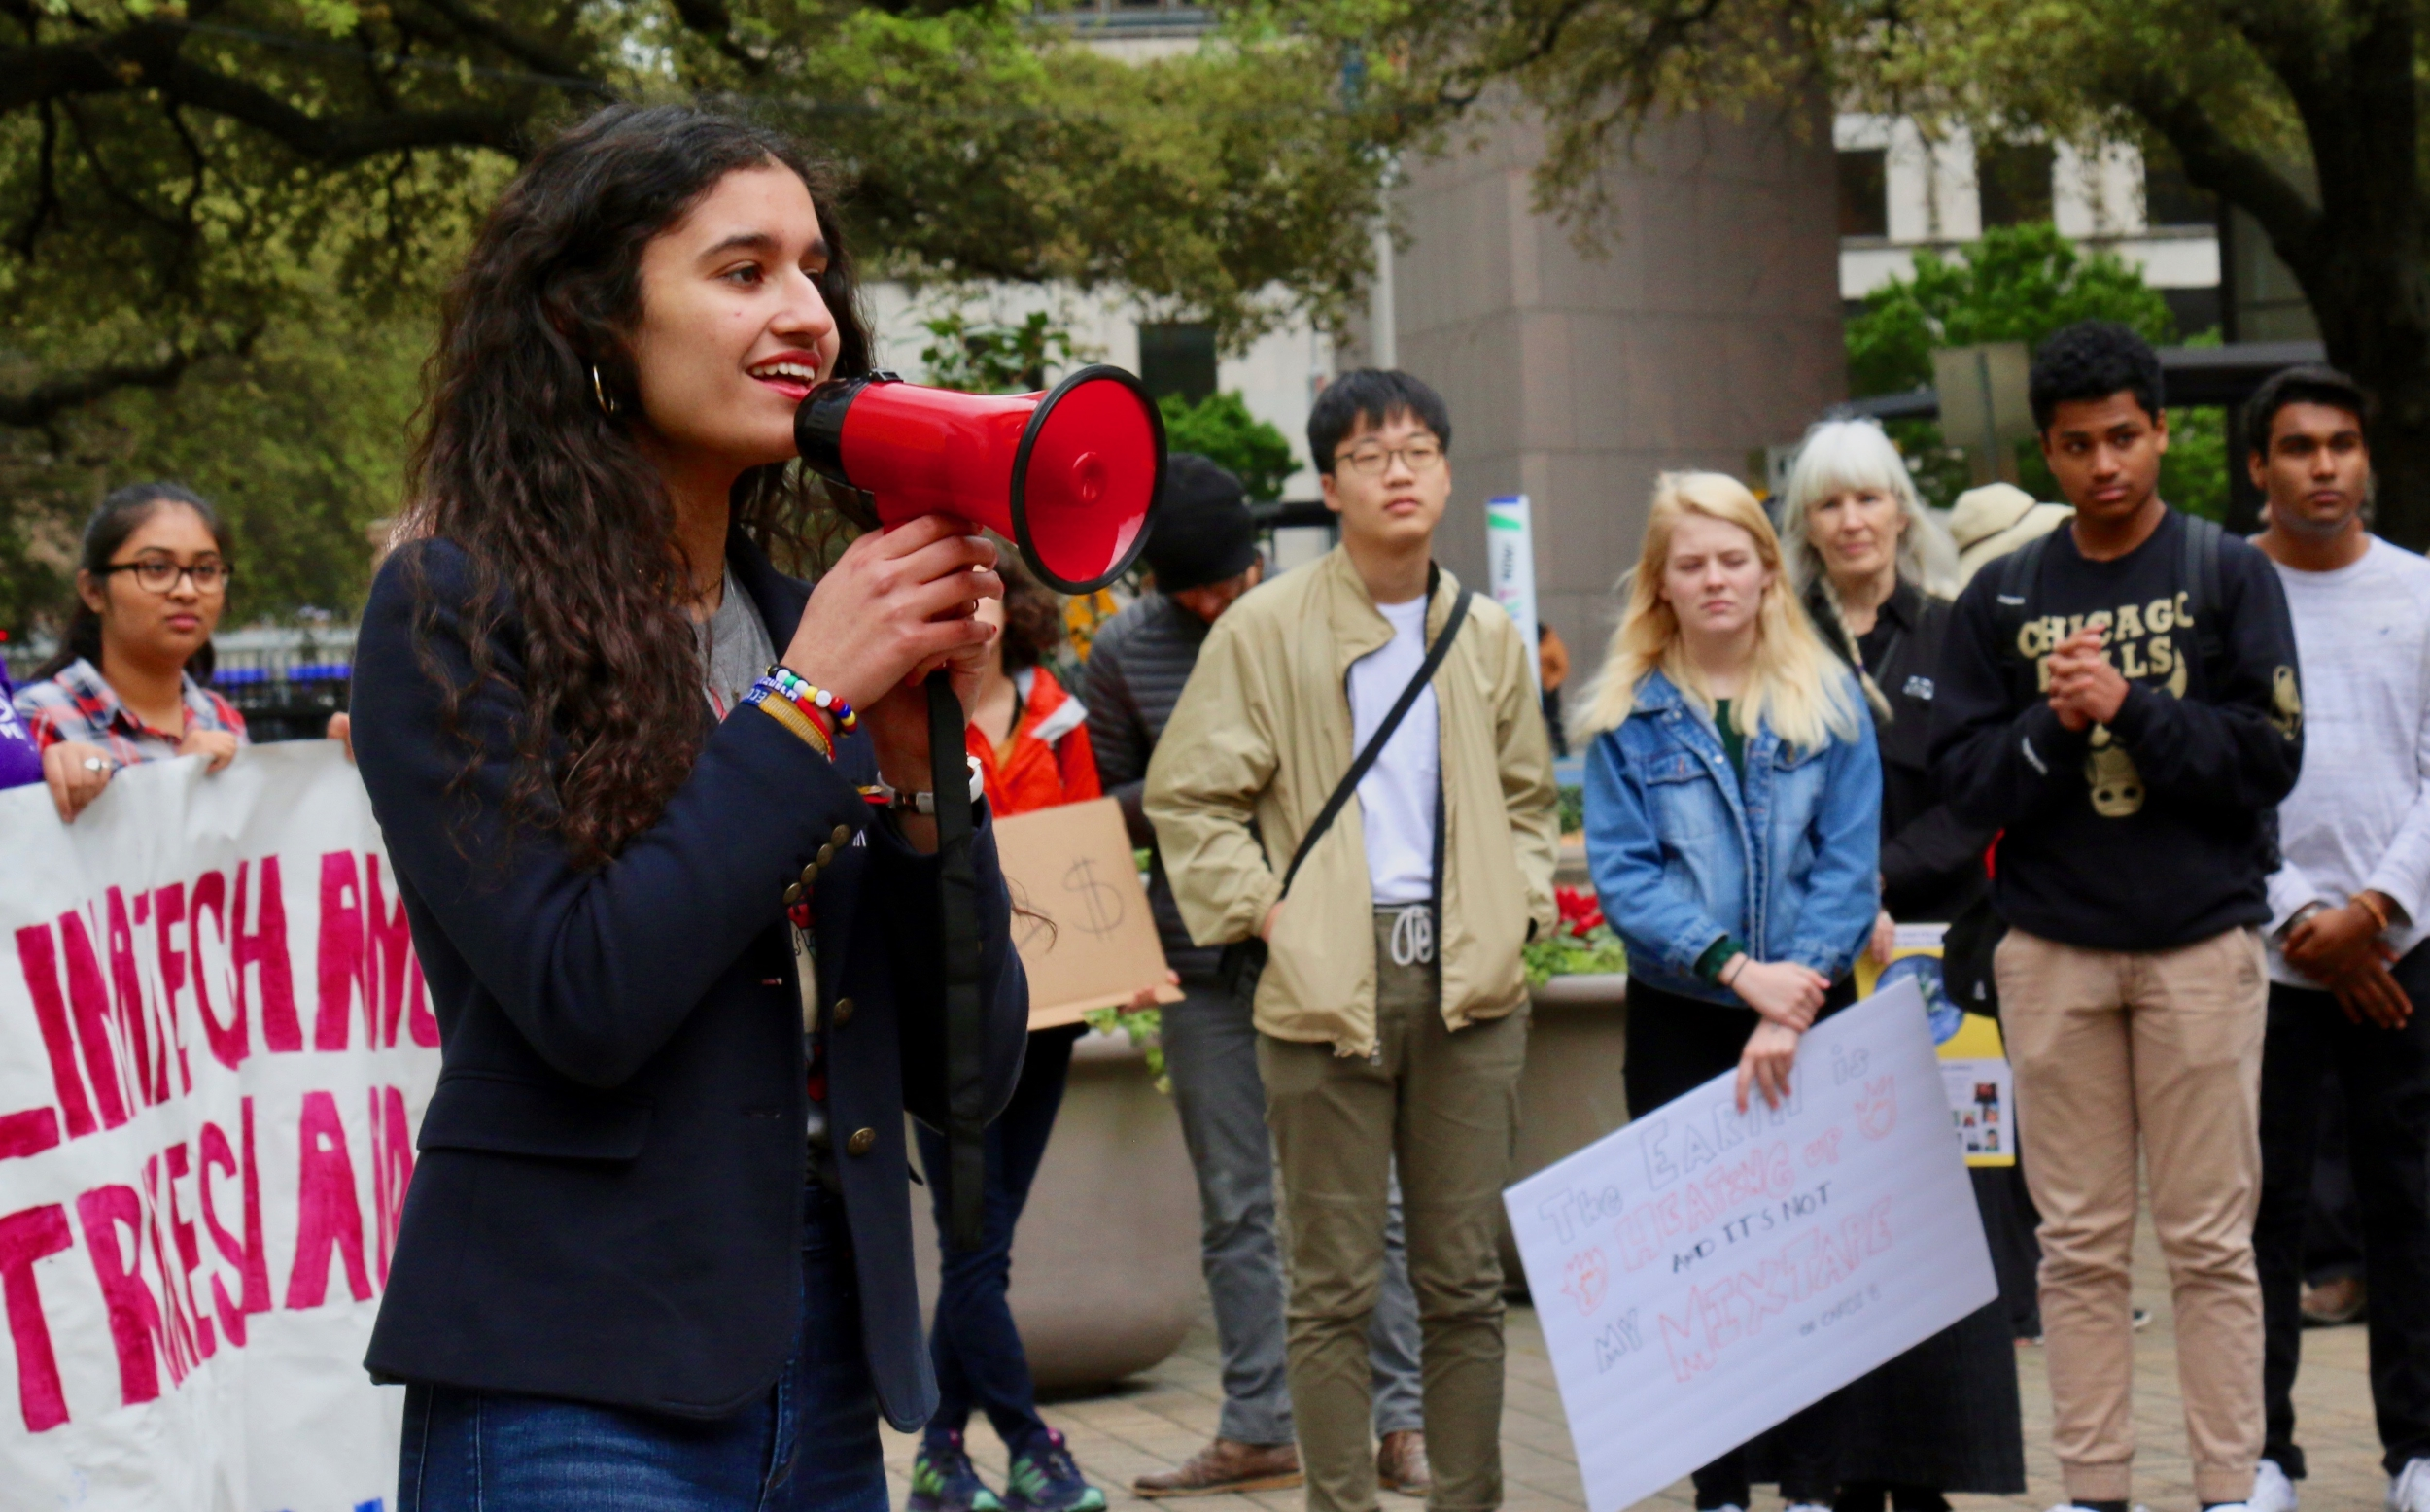 Students rally worldwide for climate action: Houston's event in